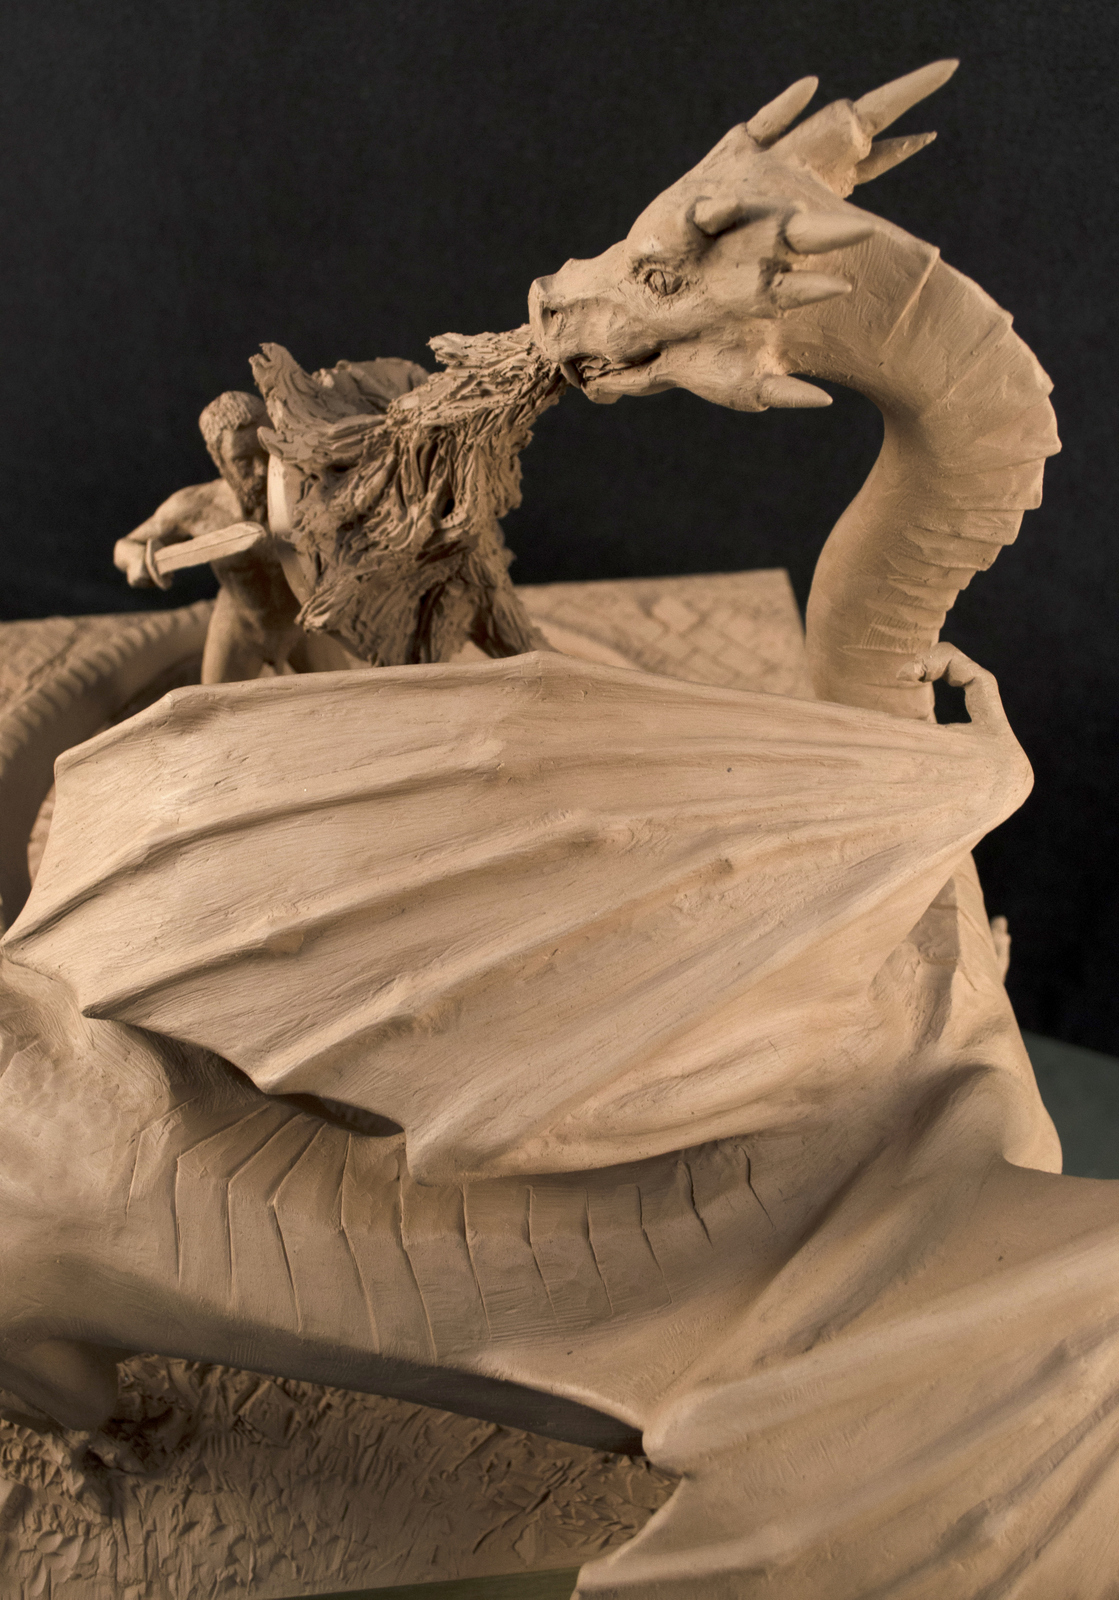 Beowulf Fights The Dragon on Behance